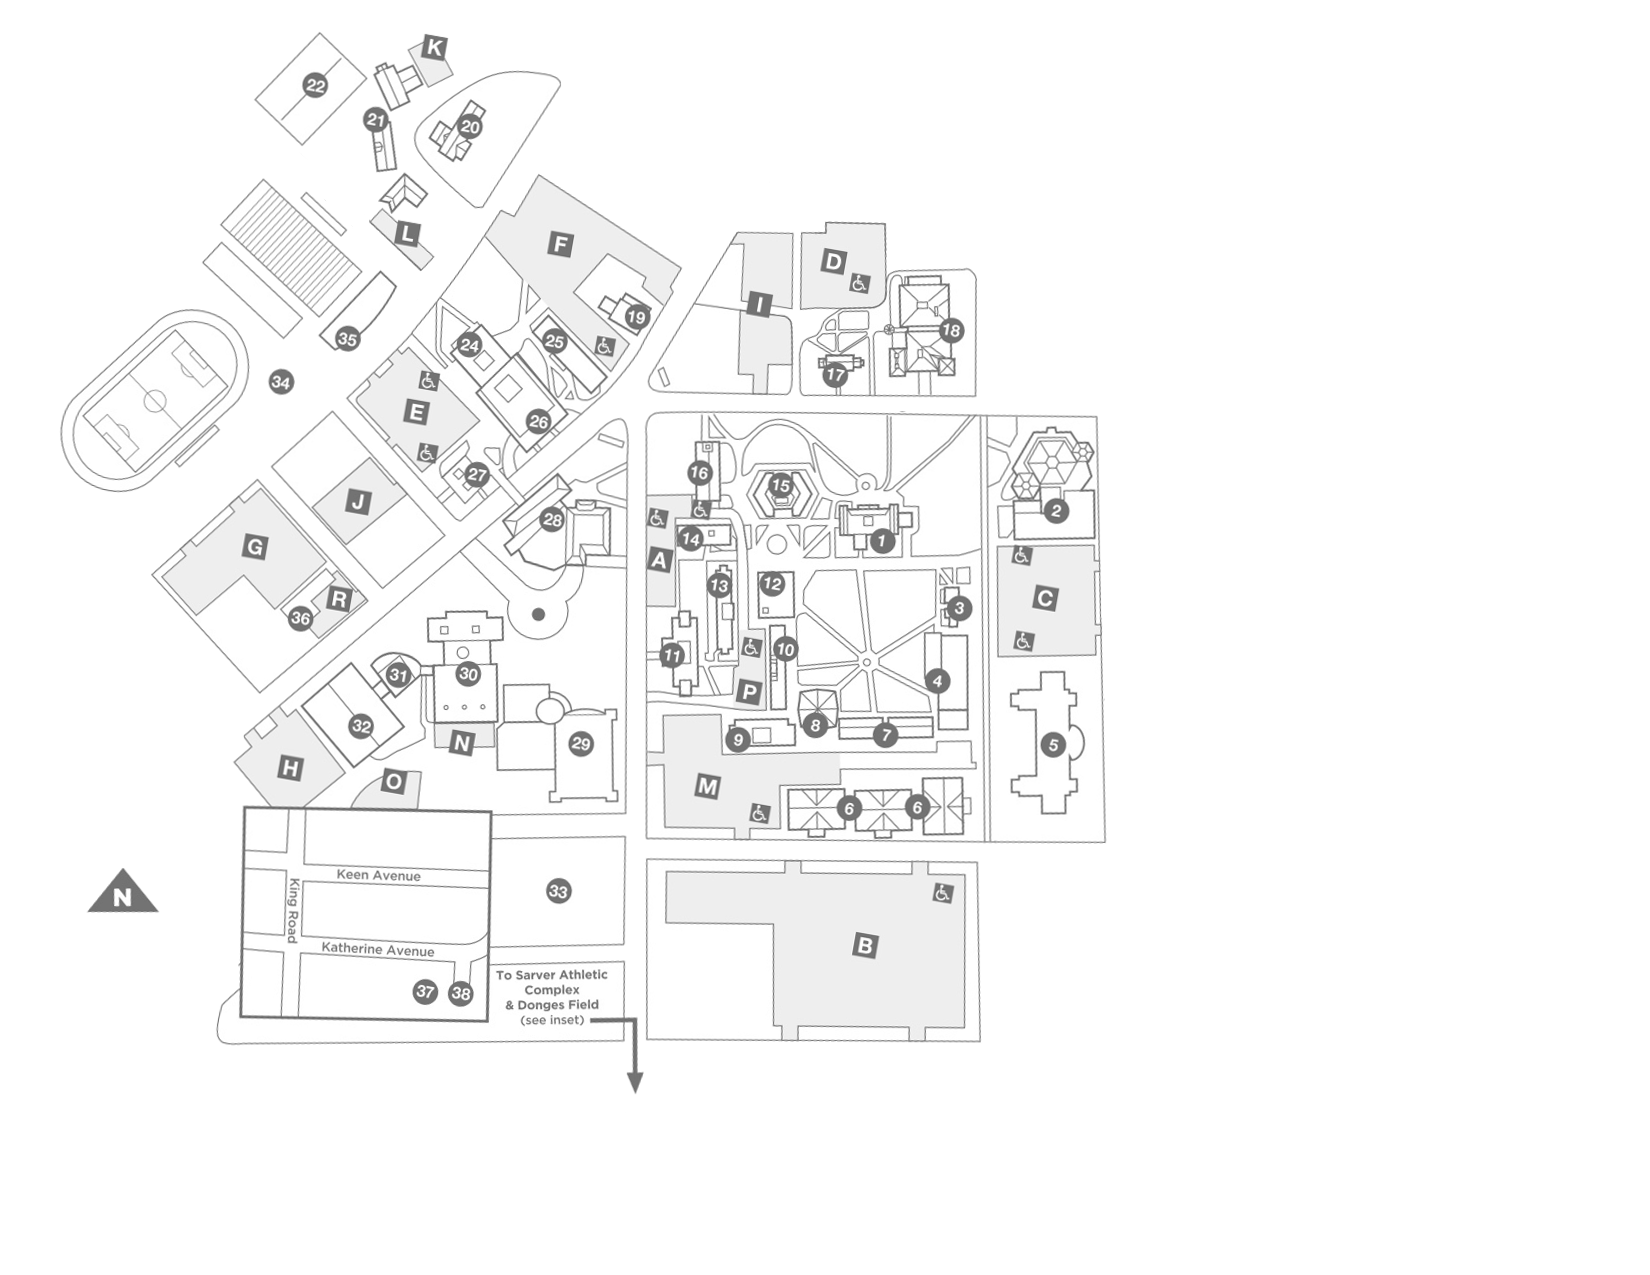 Kates gymnasium administration ashland. Tec drawing complex picture black and white download